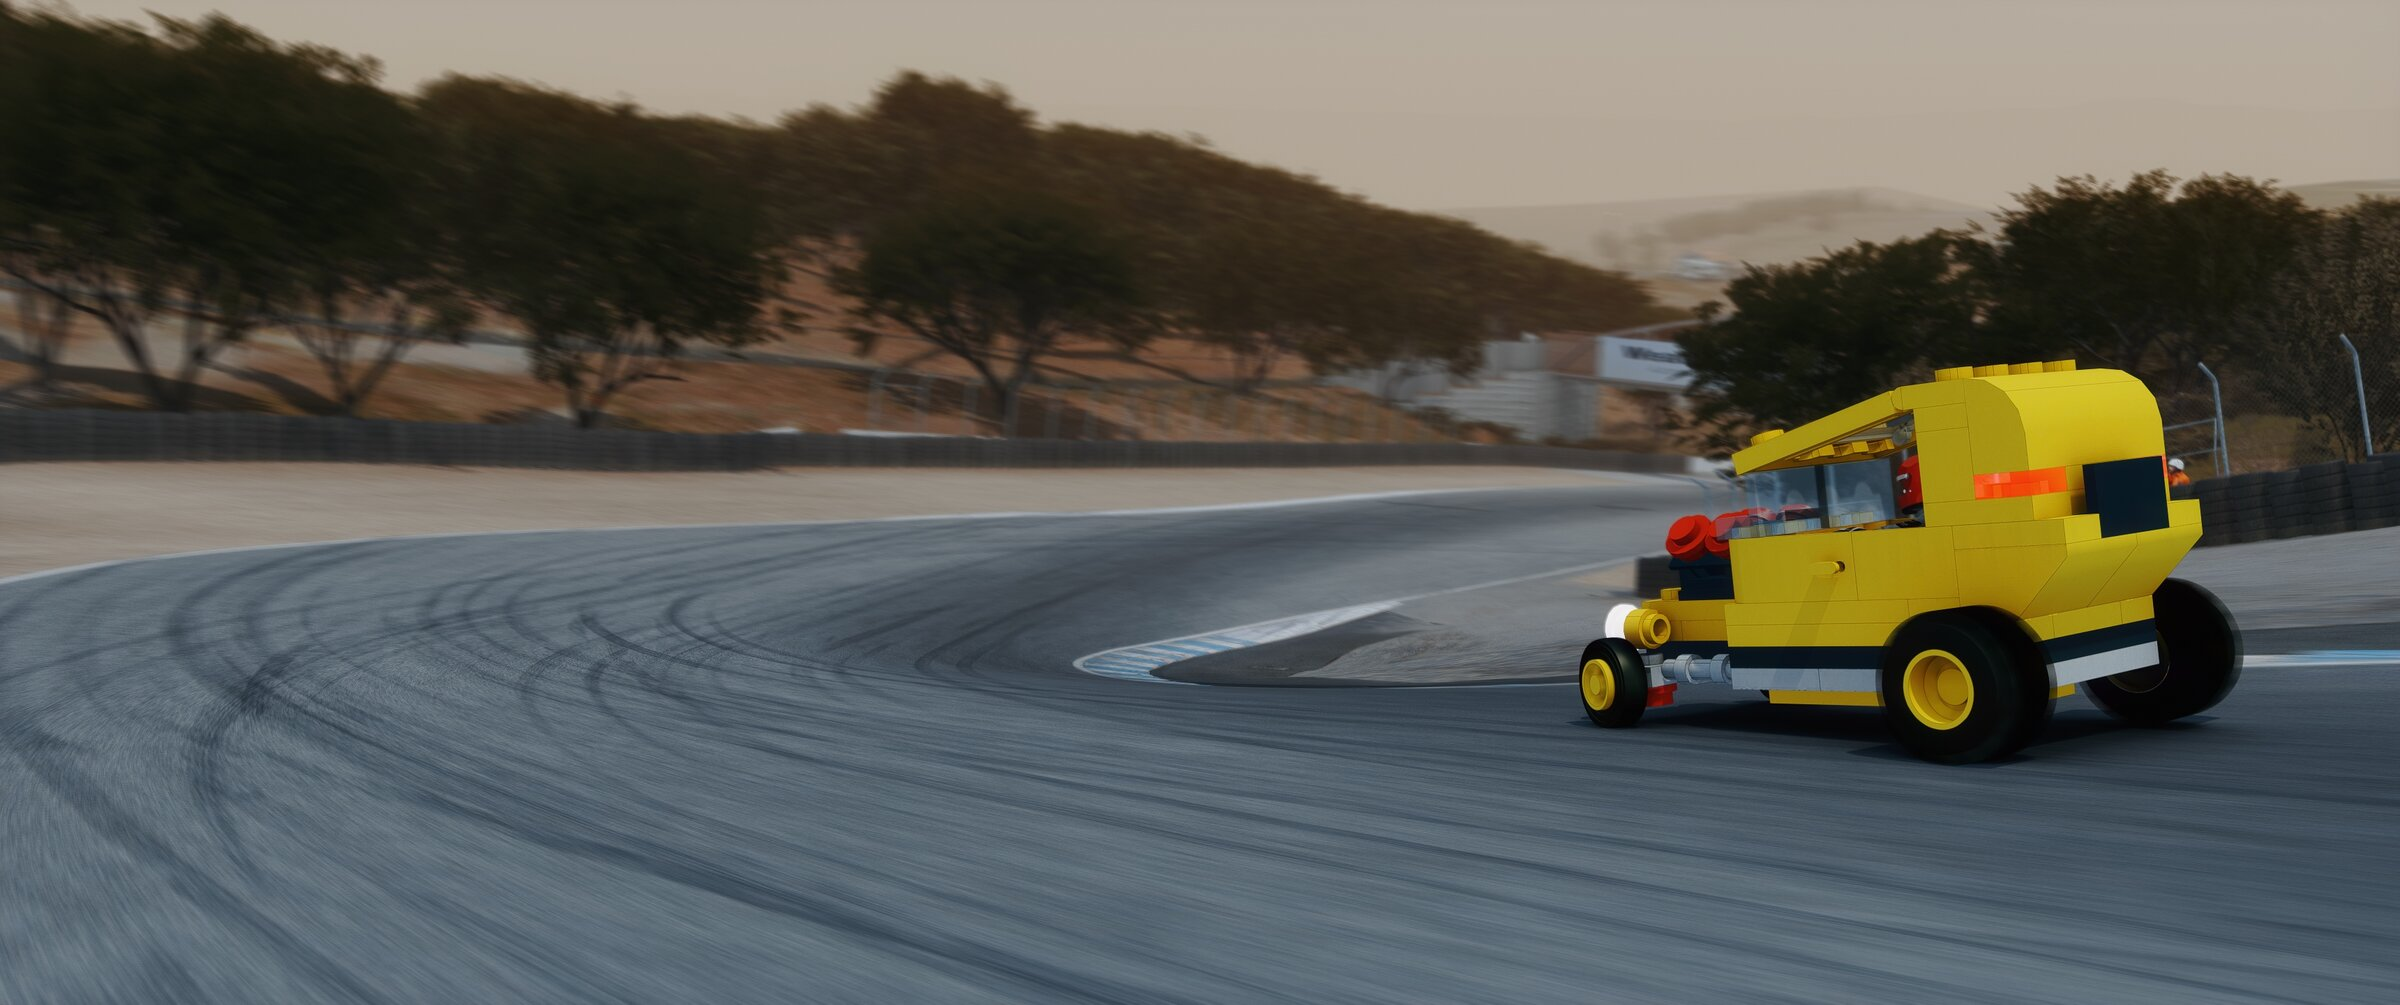 Screenshot_legocar_ks_laguna_seca_20-6-120-0-0-54.jpg